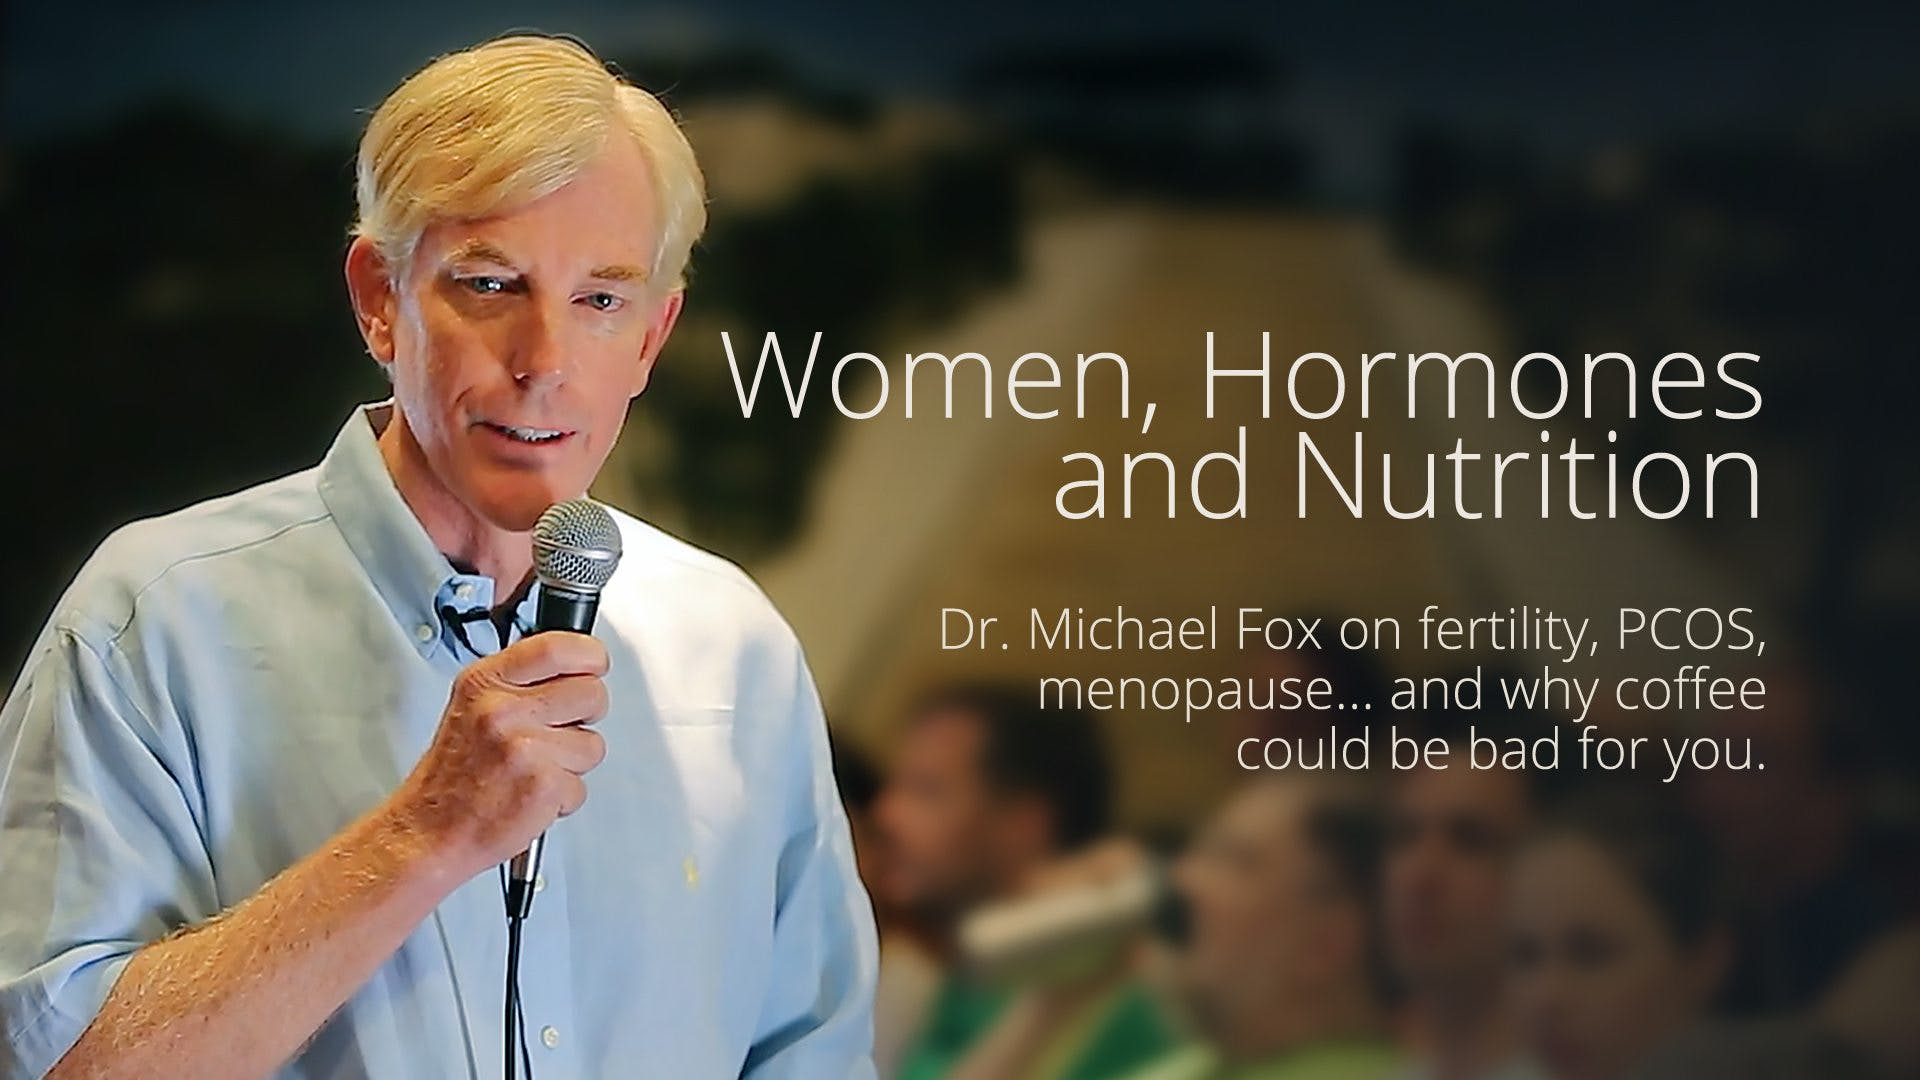 Women, Hormones and Nutrition – Presentation by Dr. Michael Fox